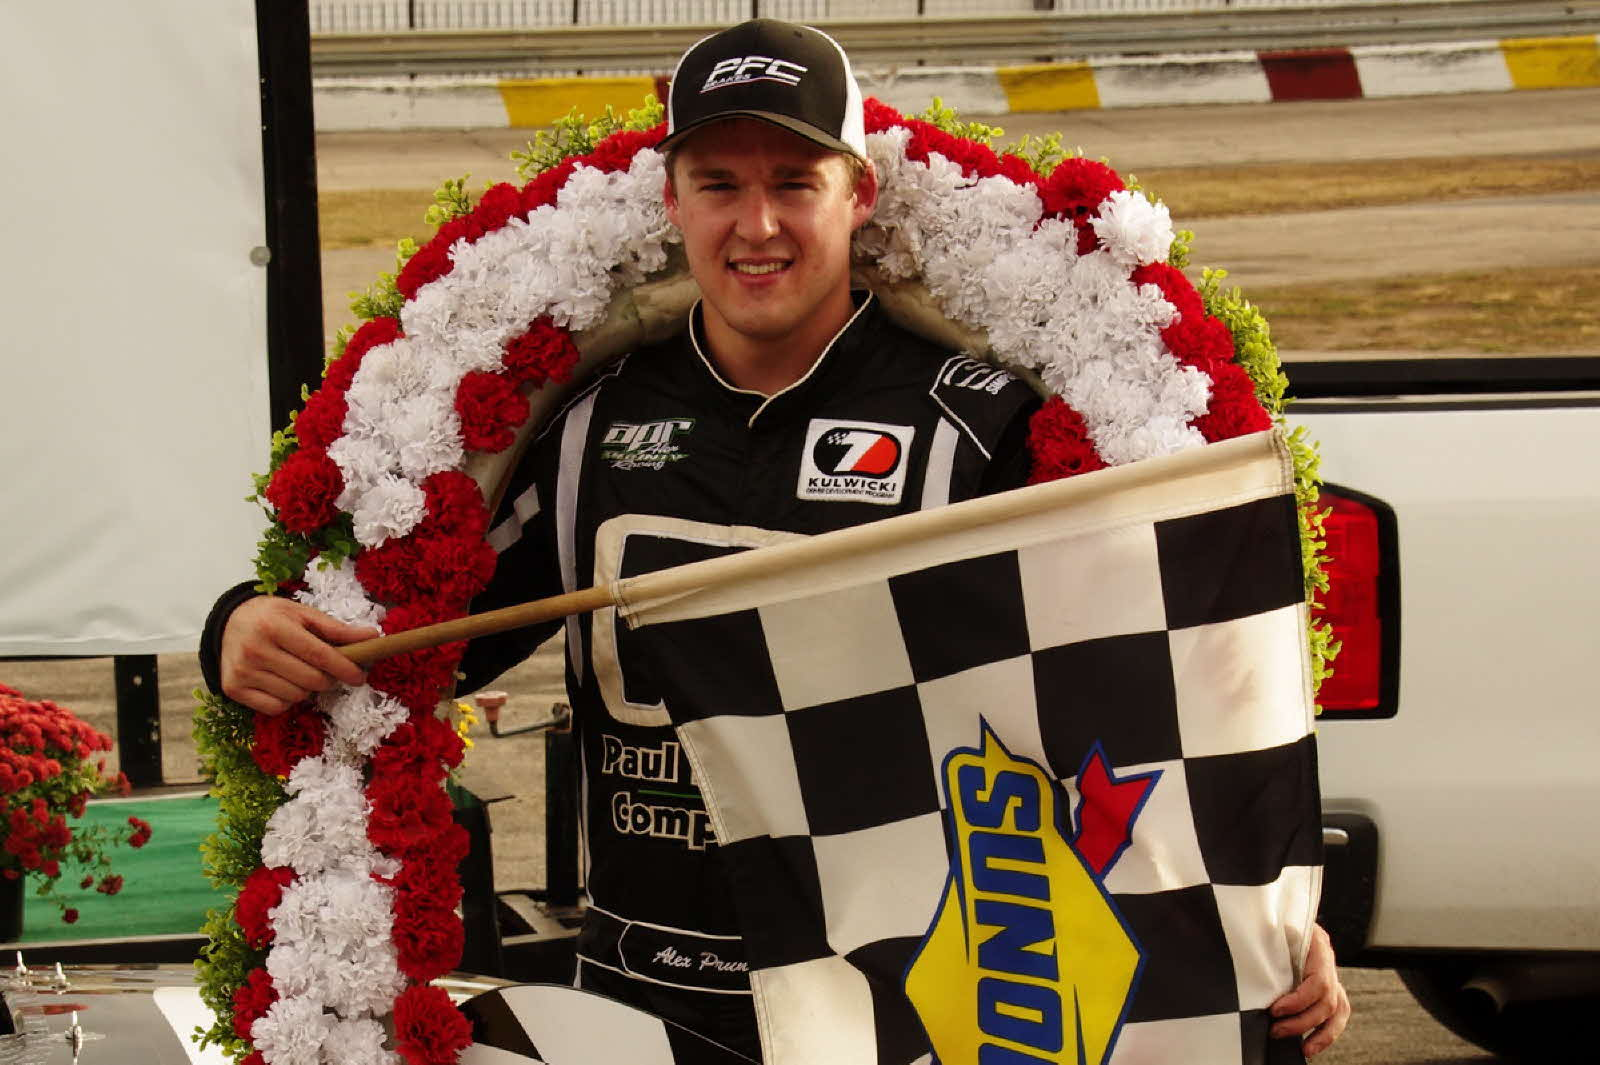 Alex Prunty dominated the 52nd Annual National Short Track Championship Super Late Model race at Rockford Speedway. [Roy Schmidt Photo]